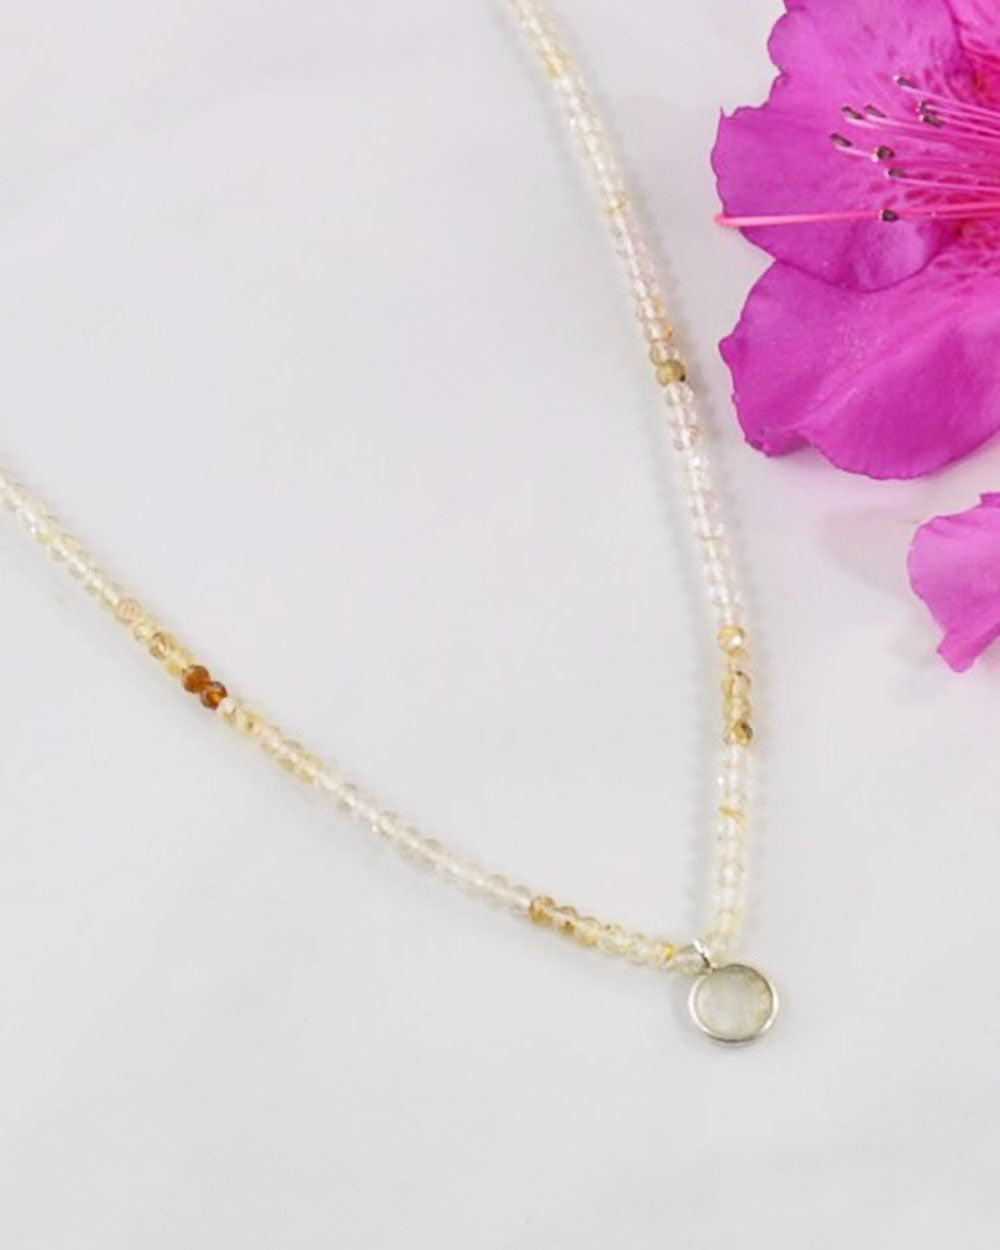 Empowered Gold Rutilated Quartz Necklace - Balance